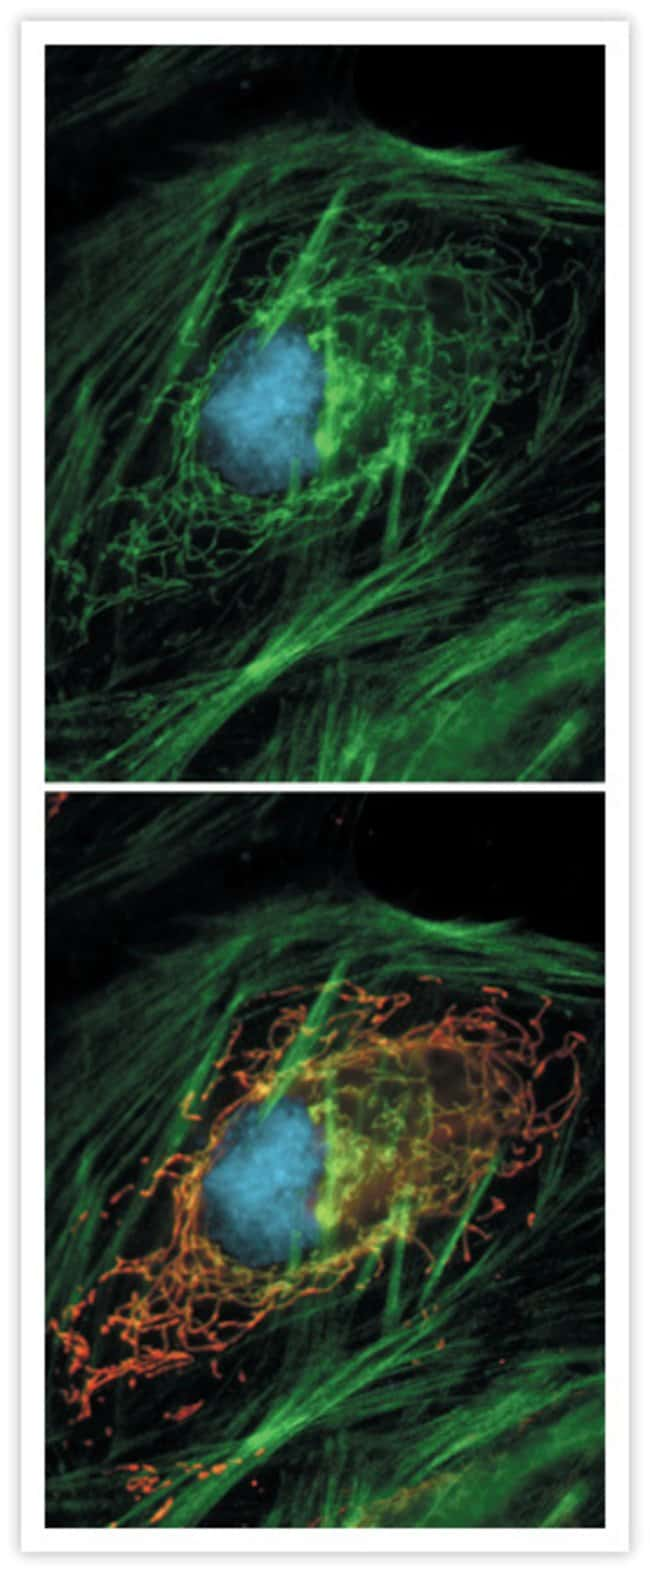 HeLa cell transfected with pShooter pCMV/myc/mito/GFP, then fixed and permeabilized. Green-fluorescent protein (GFP) localized in the mitochondria was labeled with anti-GFP mouse IgG<sub>2a</sub> (Cat